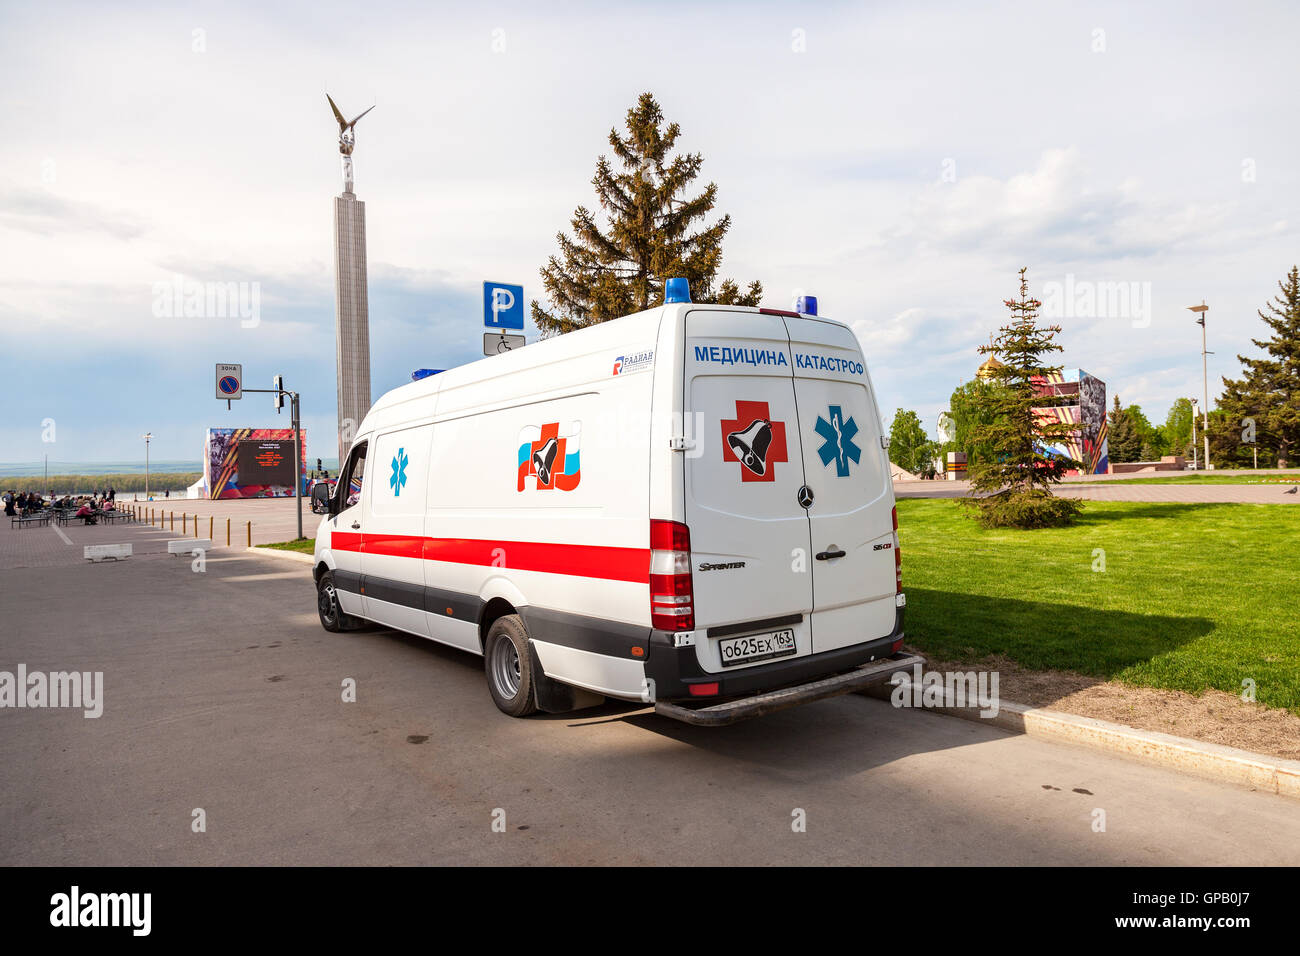 Ambulance car parked up in the street. Text in russian: 'Emergency Medicine' - Stock Image